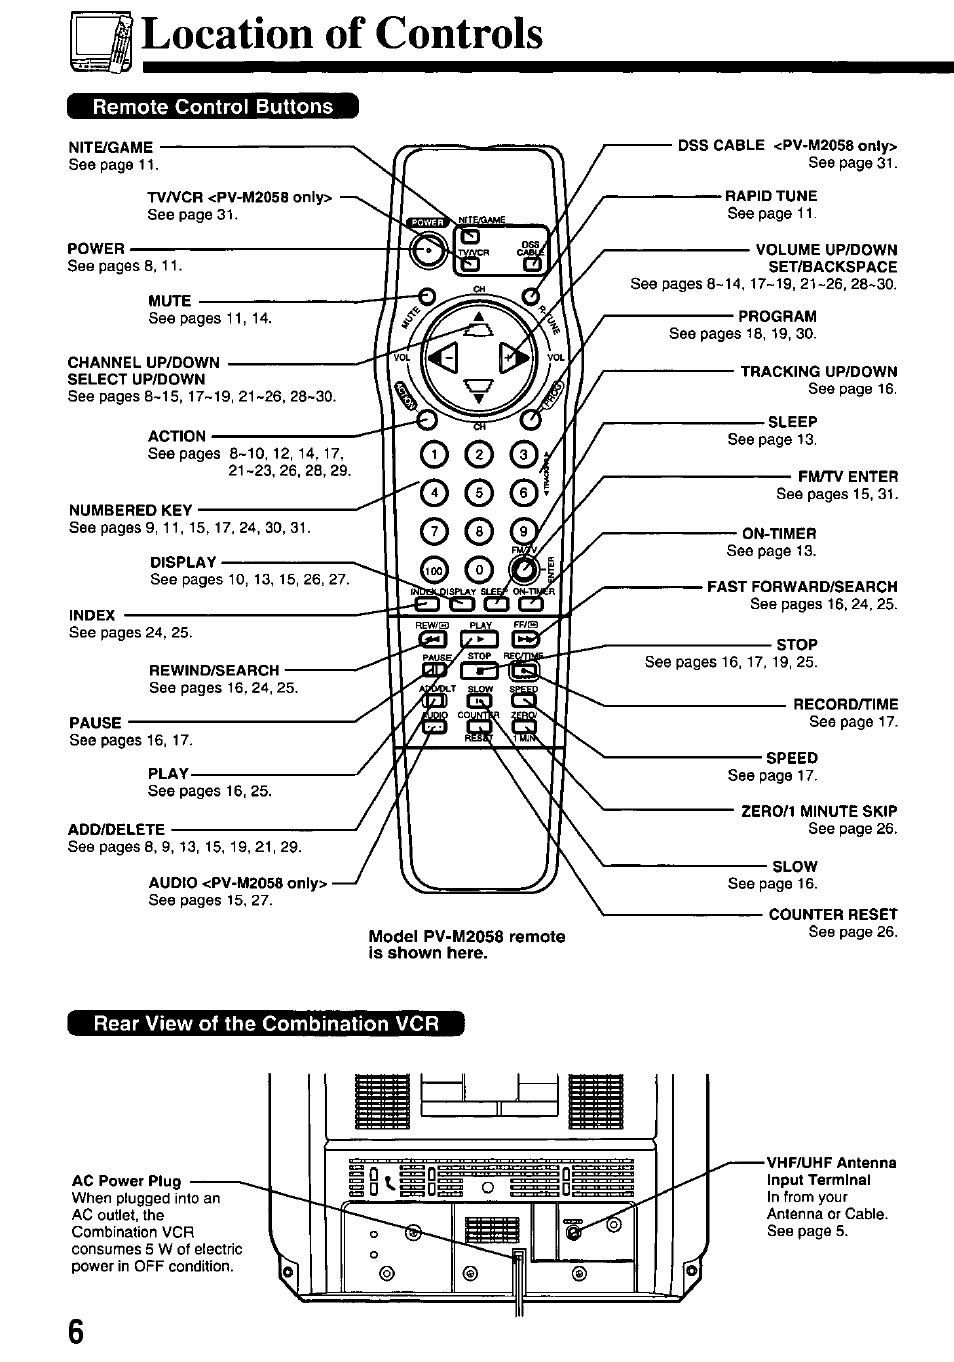 Location of controls, Remote control buttons, Rear view of